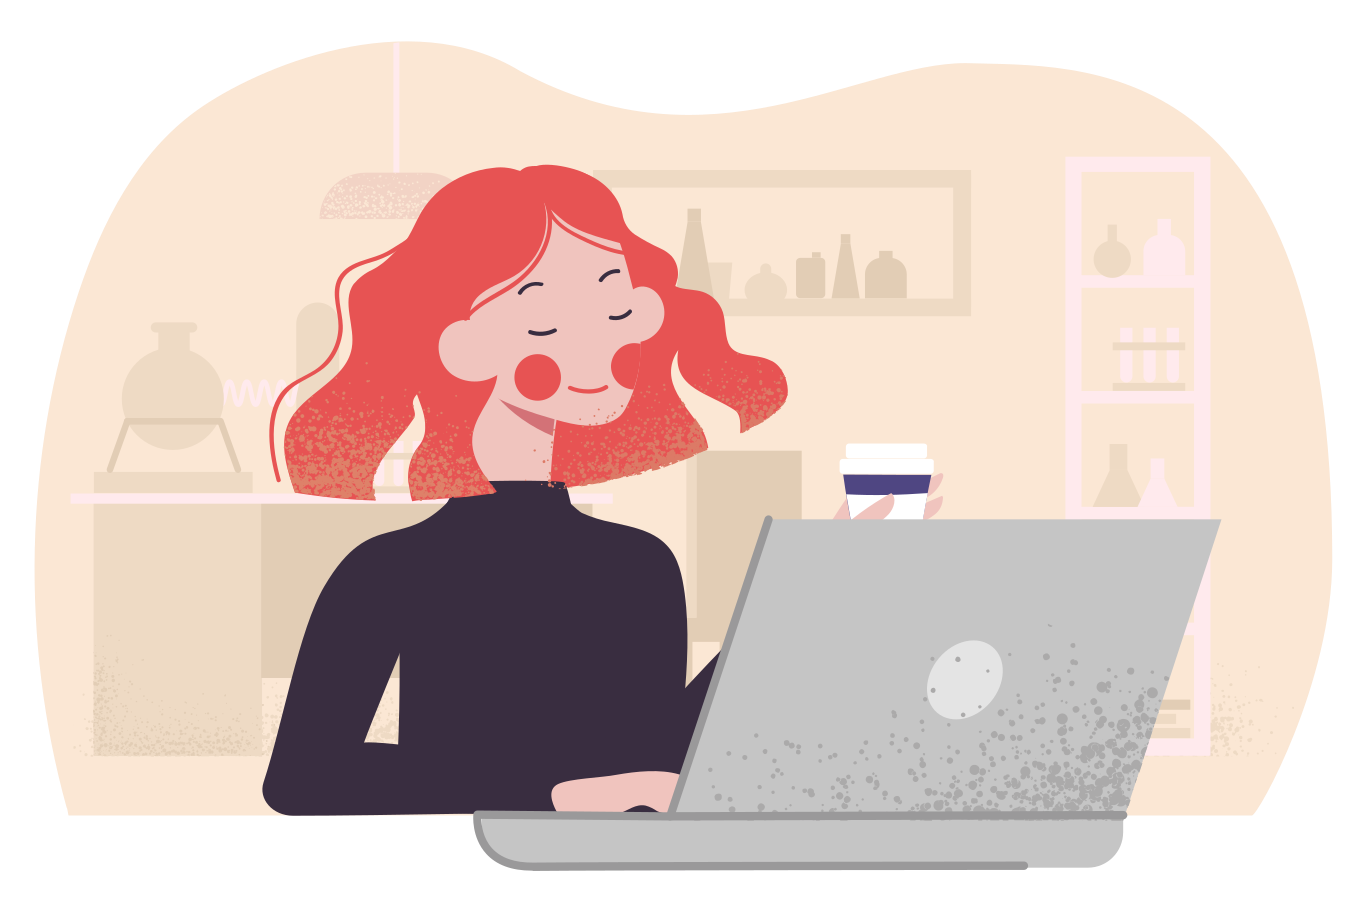 style Enjoying remote work Vector images in PNG and SVG | Icons8 Illustrations